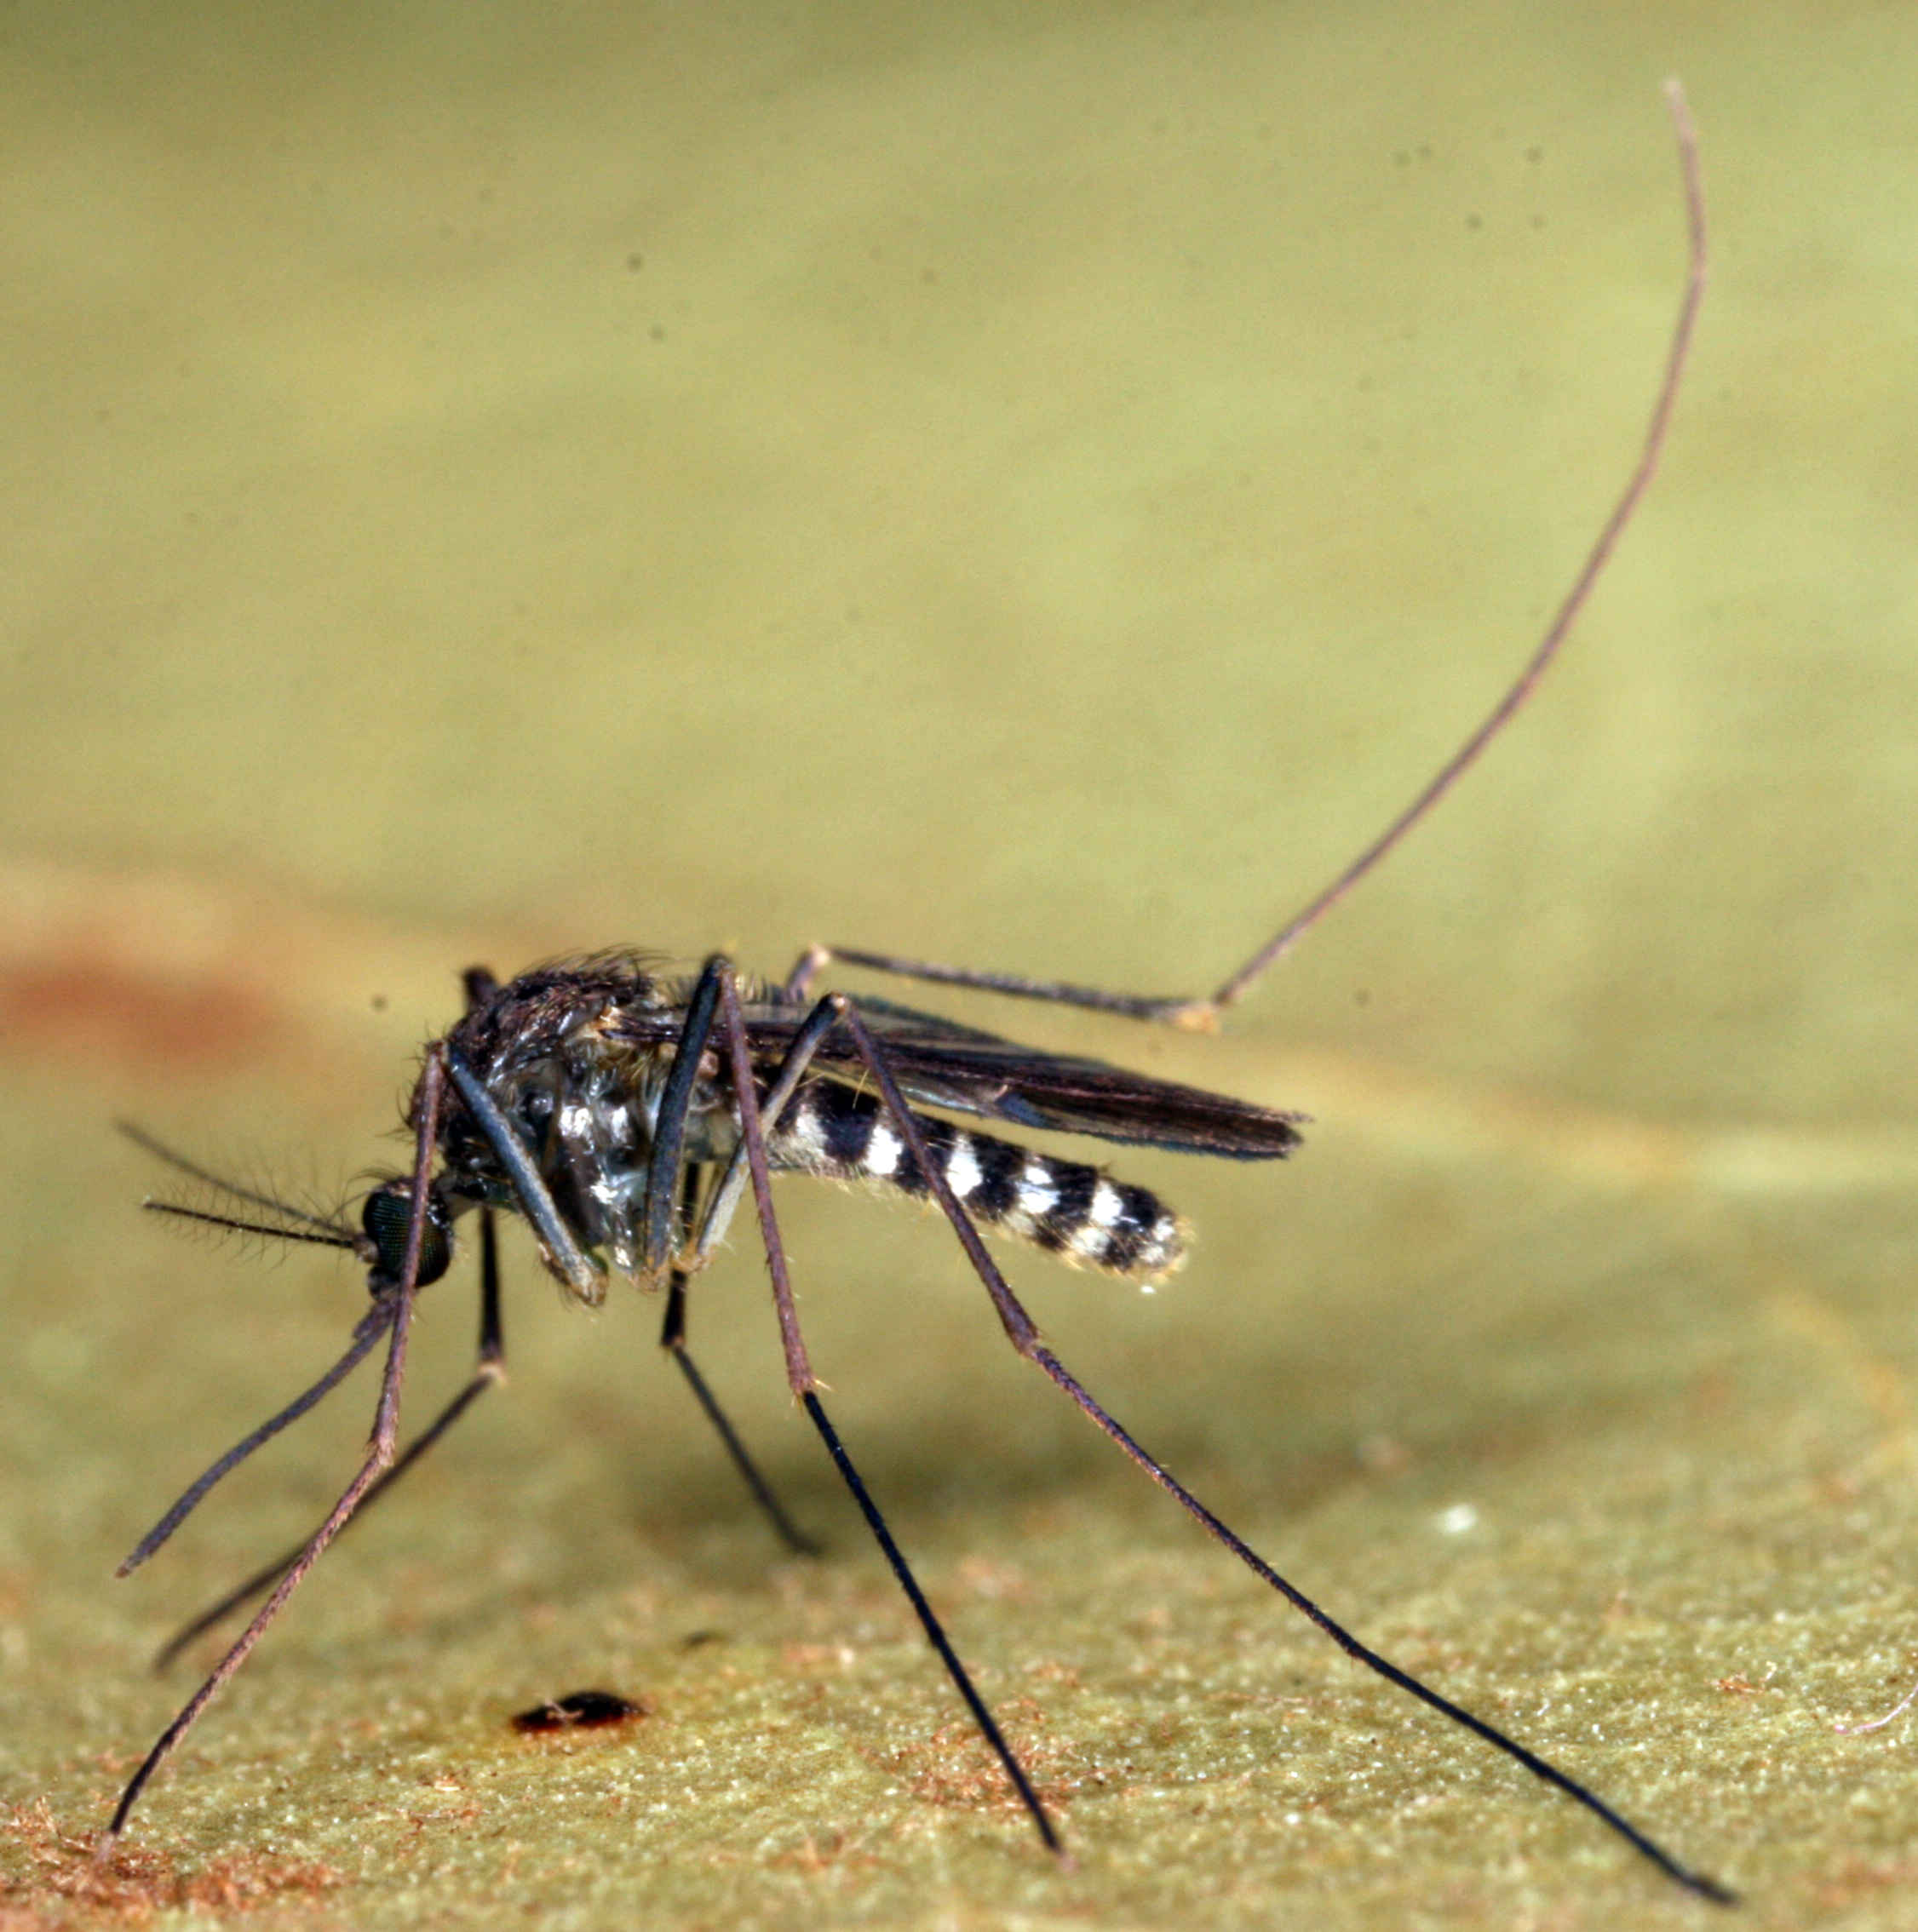 Mosquito May Play Key Role in Transmitting Eastern Equine ...